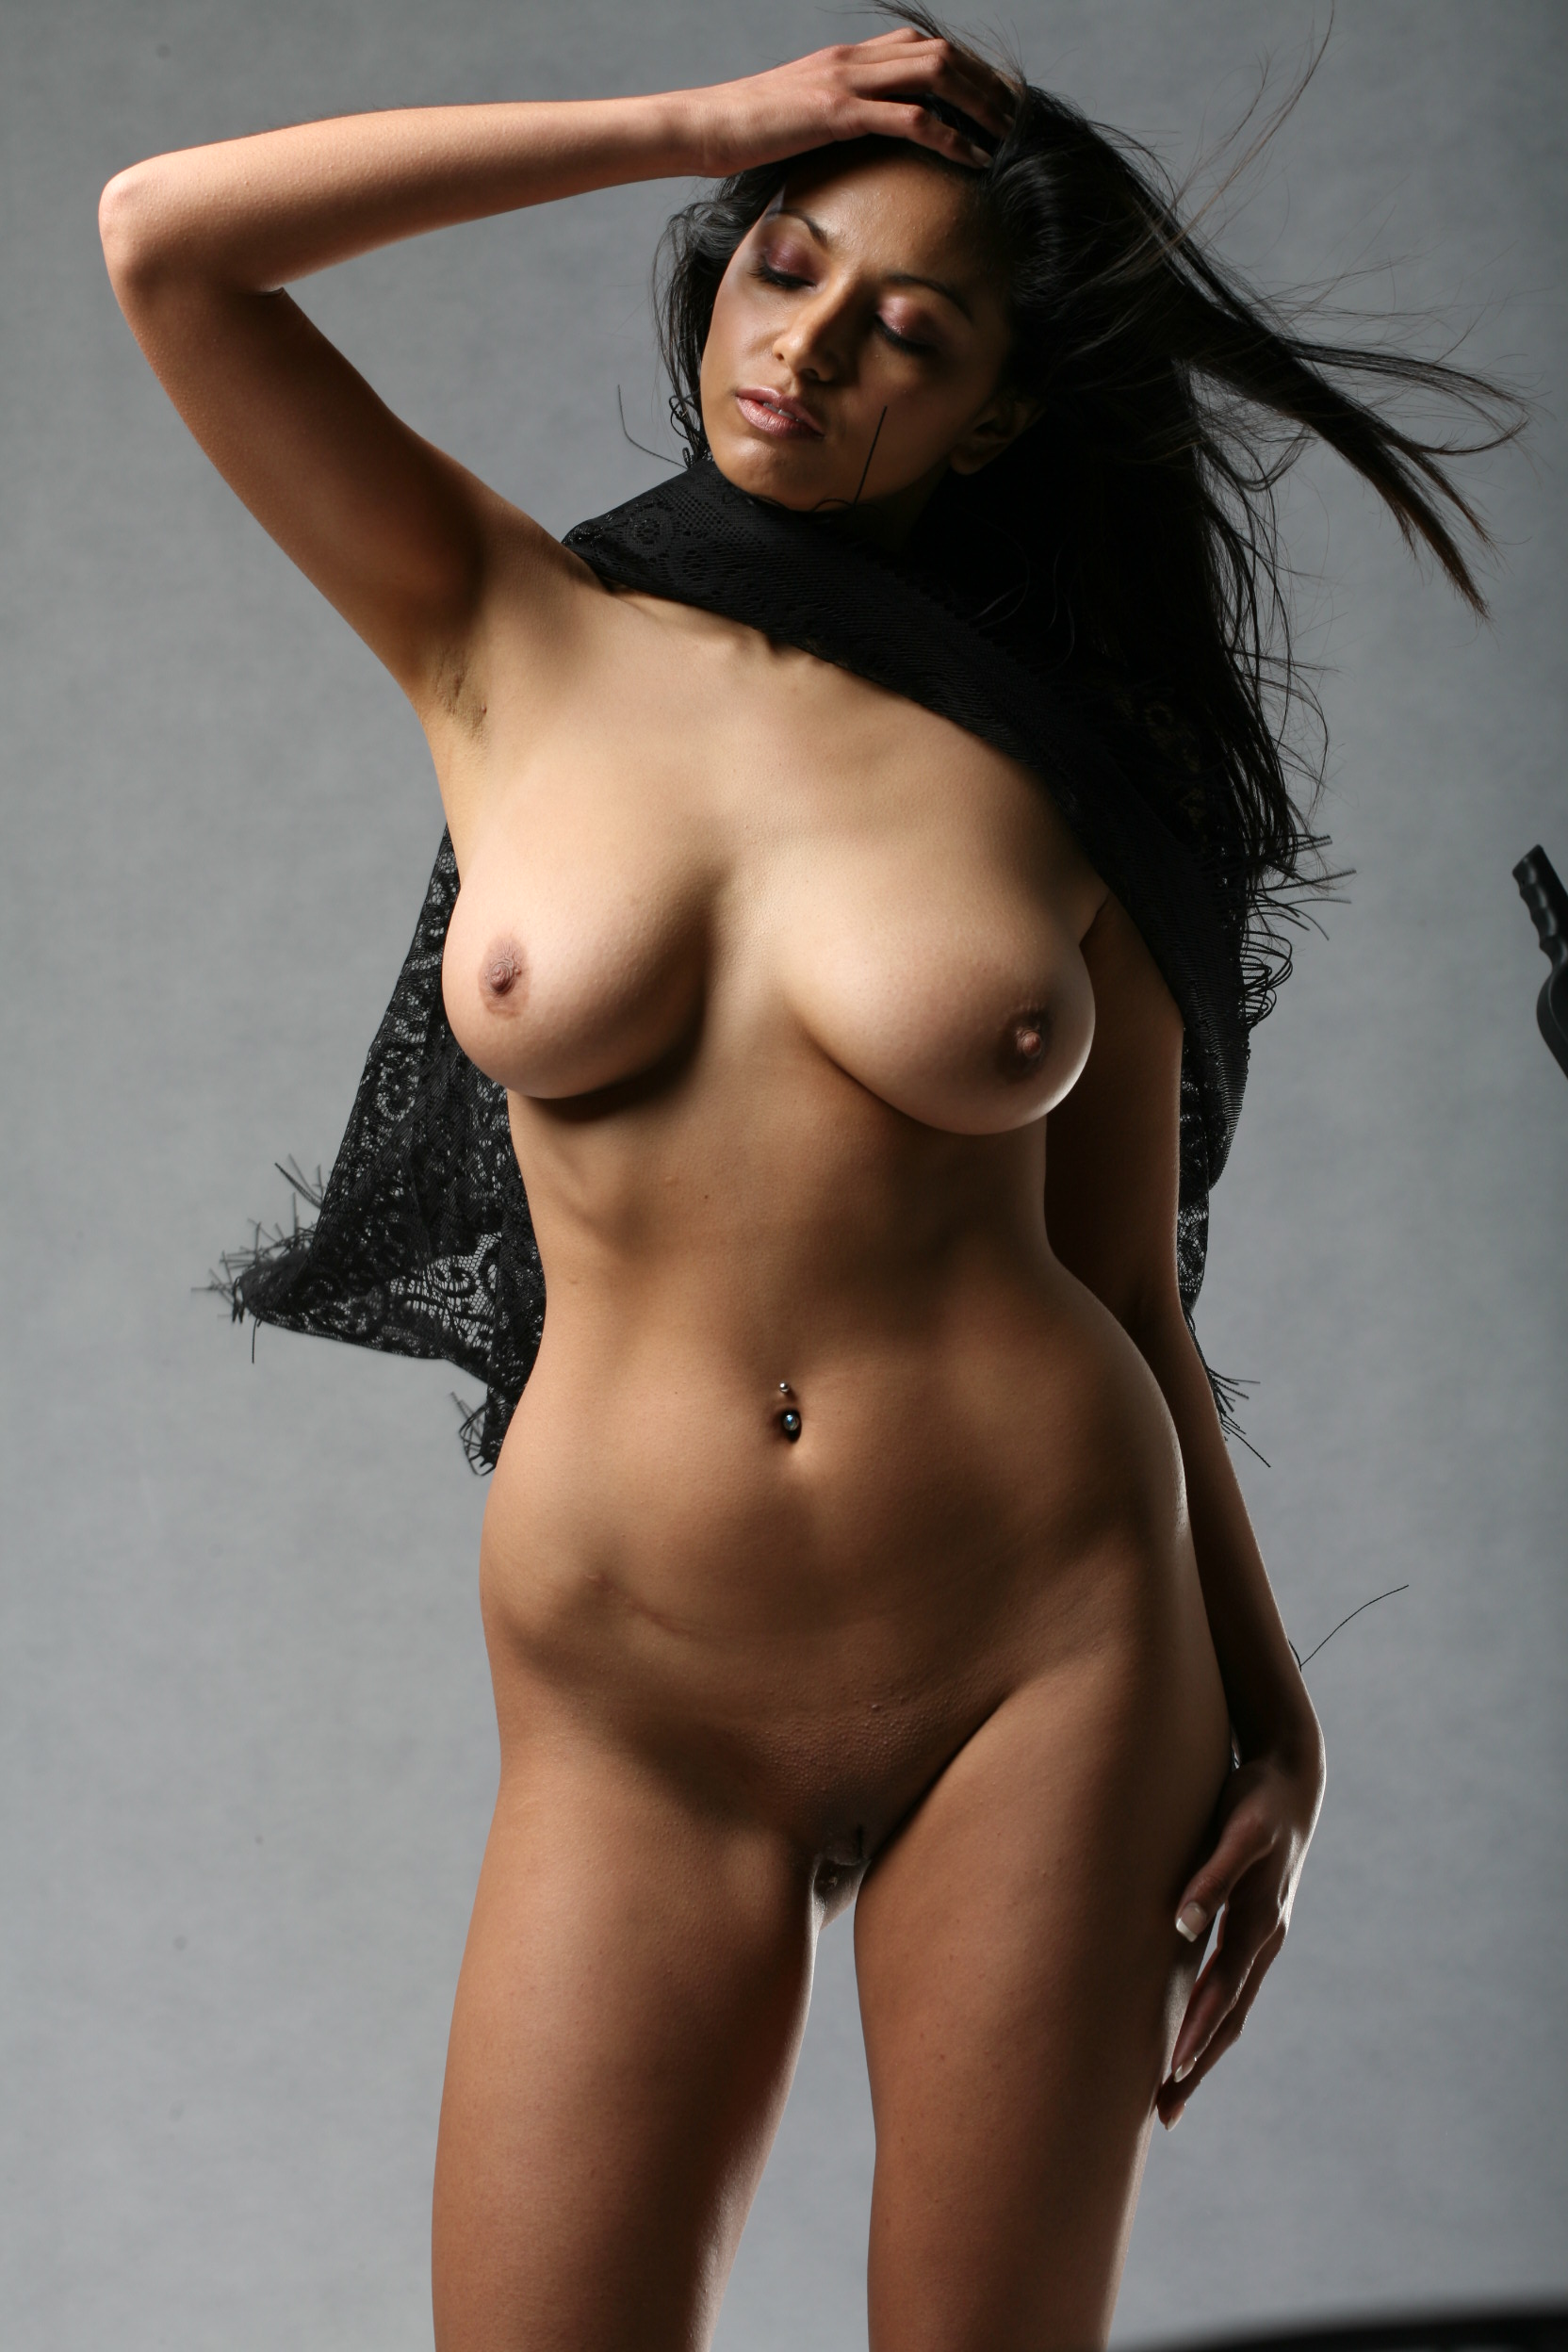 Big tit mixed race girl